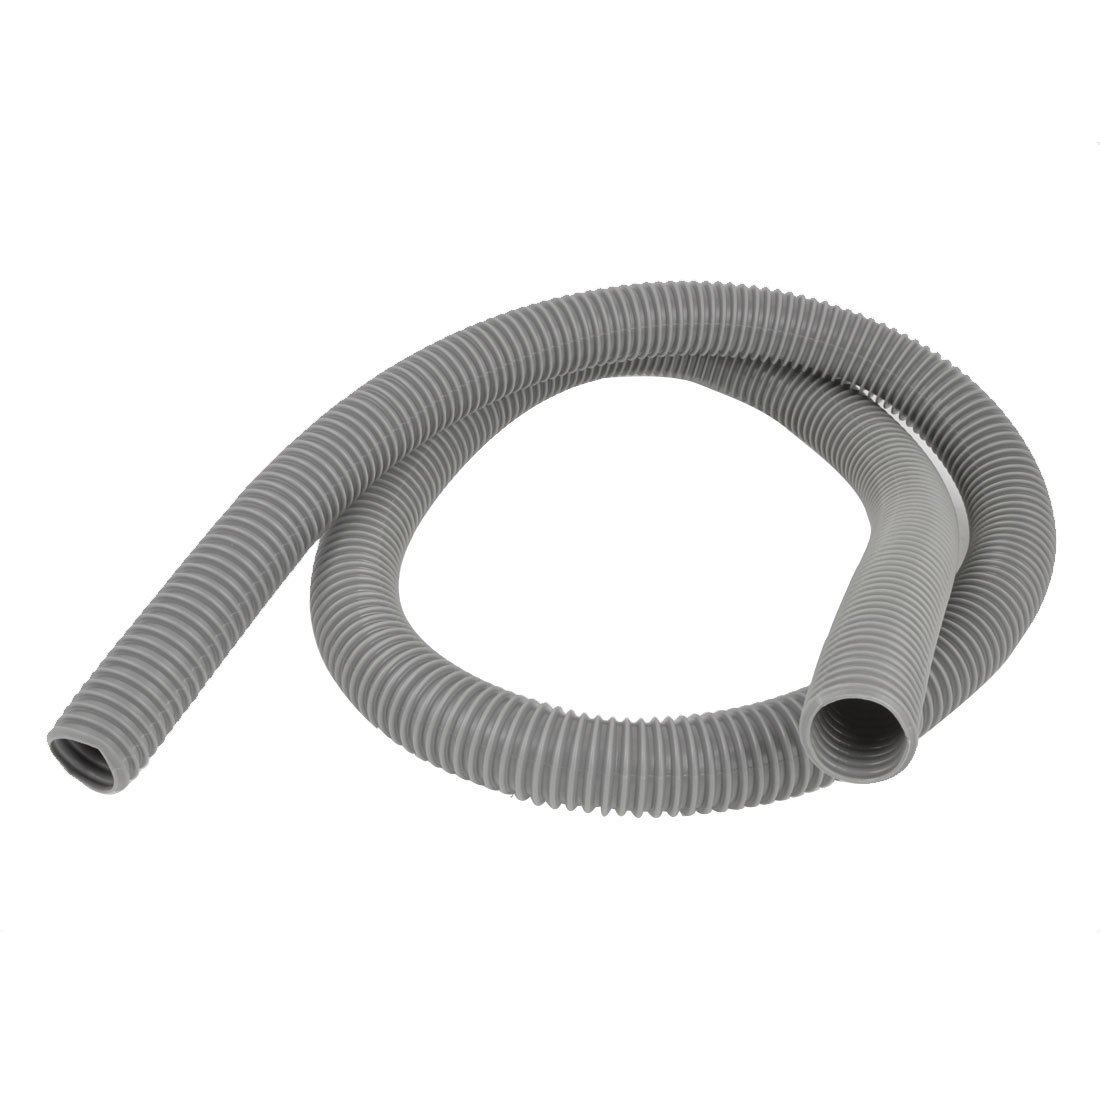 Home 40mm Outer Diameter Vacuum Cleaner PVC Hose Tube Pipe 1.9M Long Sourcingmap a14050200ux0193